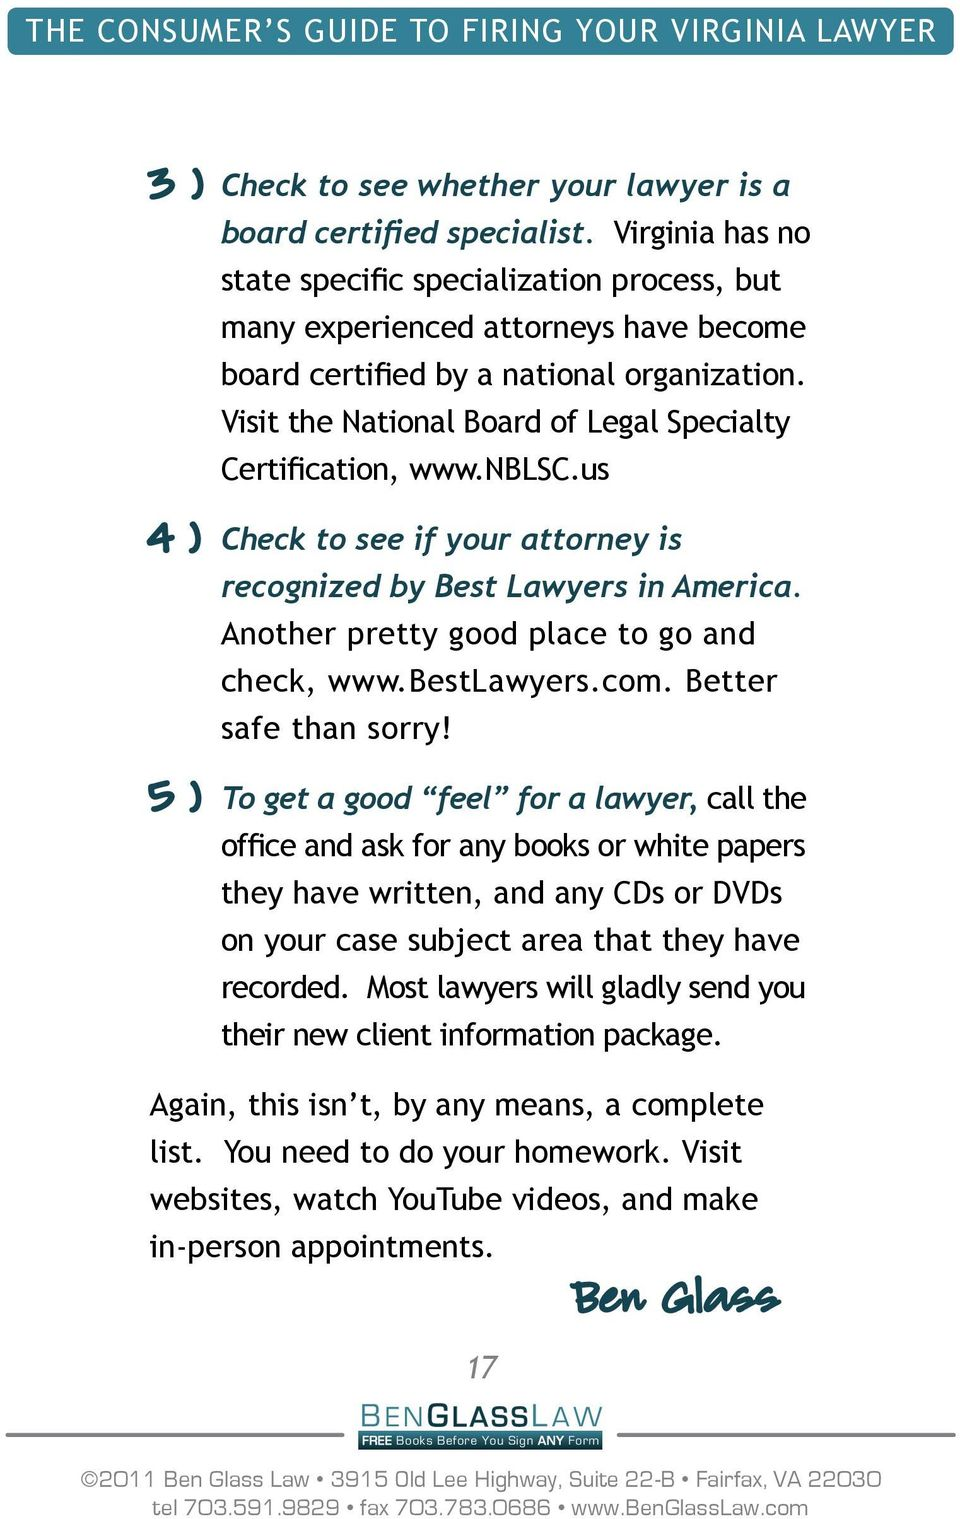 Visit the National Board of Legal Specialty Certification, www.nblsc.us 4 ) Check to see if your attorney is recognized by Best Lawyers in America. Another pretty good place to go and check, www.